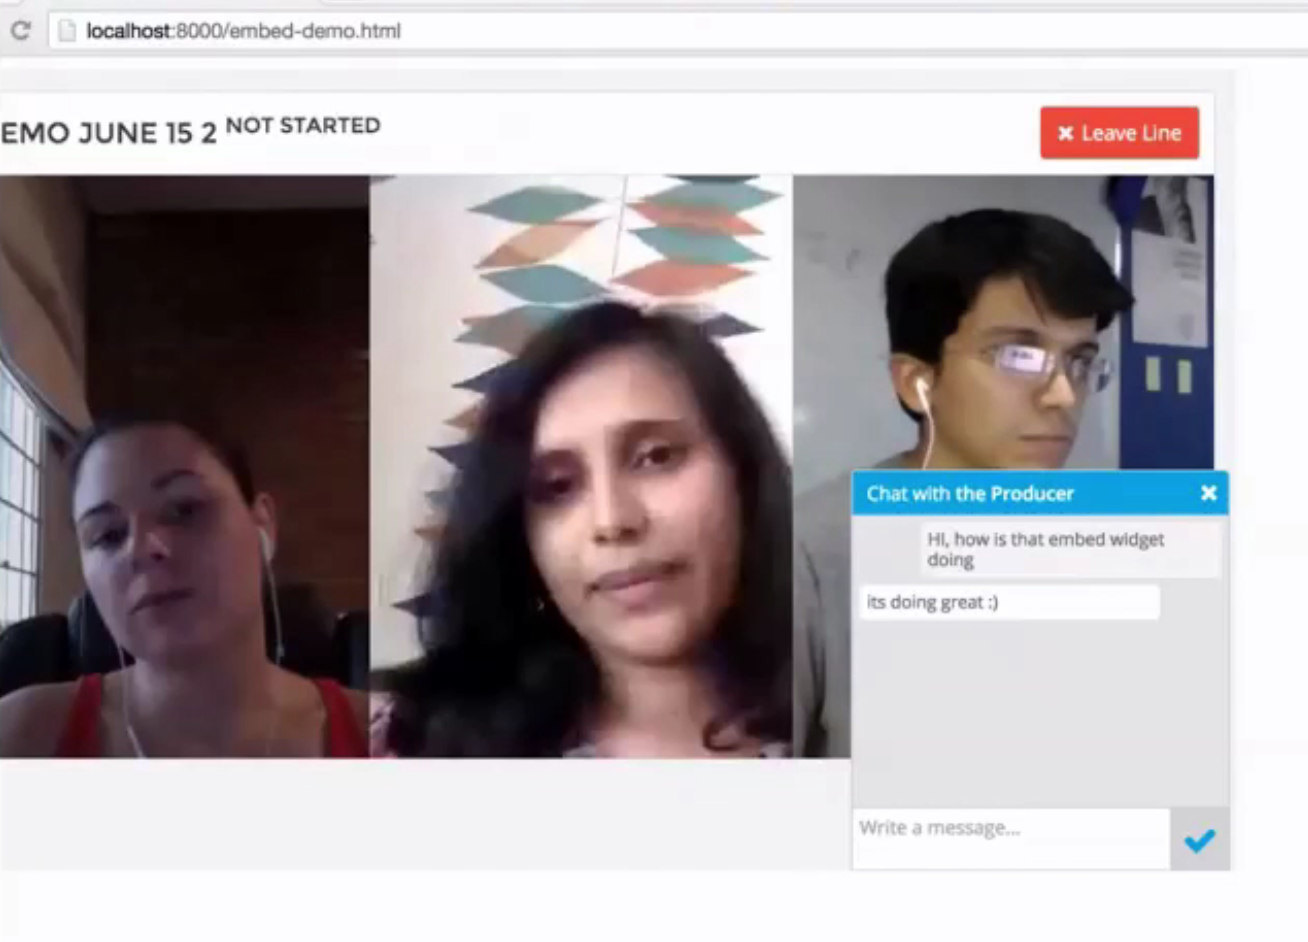 ChatShow Live Streaming event based on WebRTC